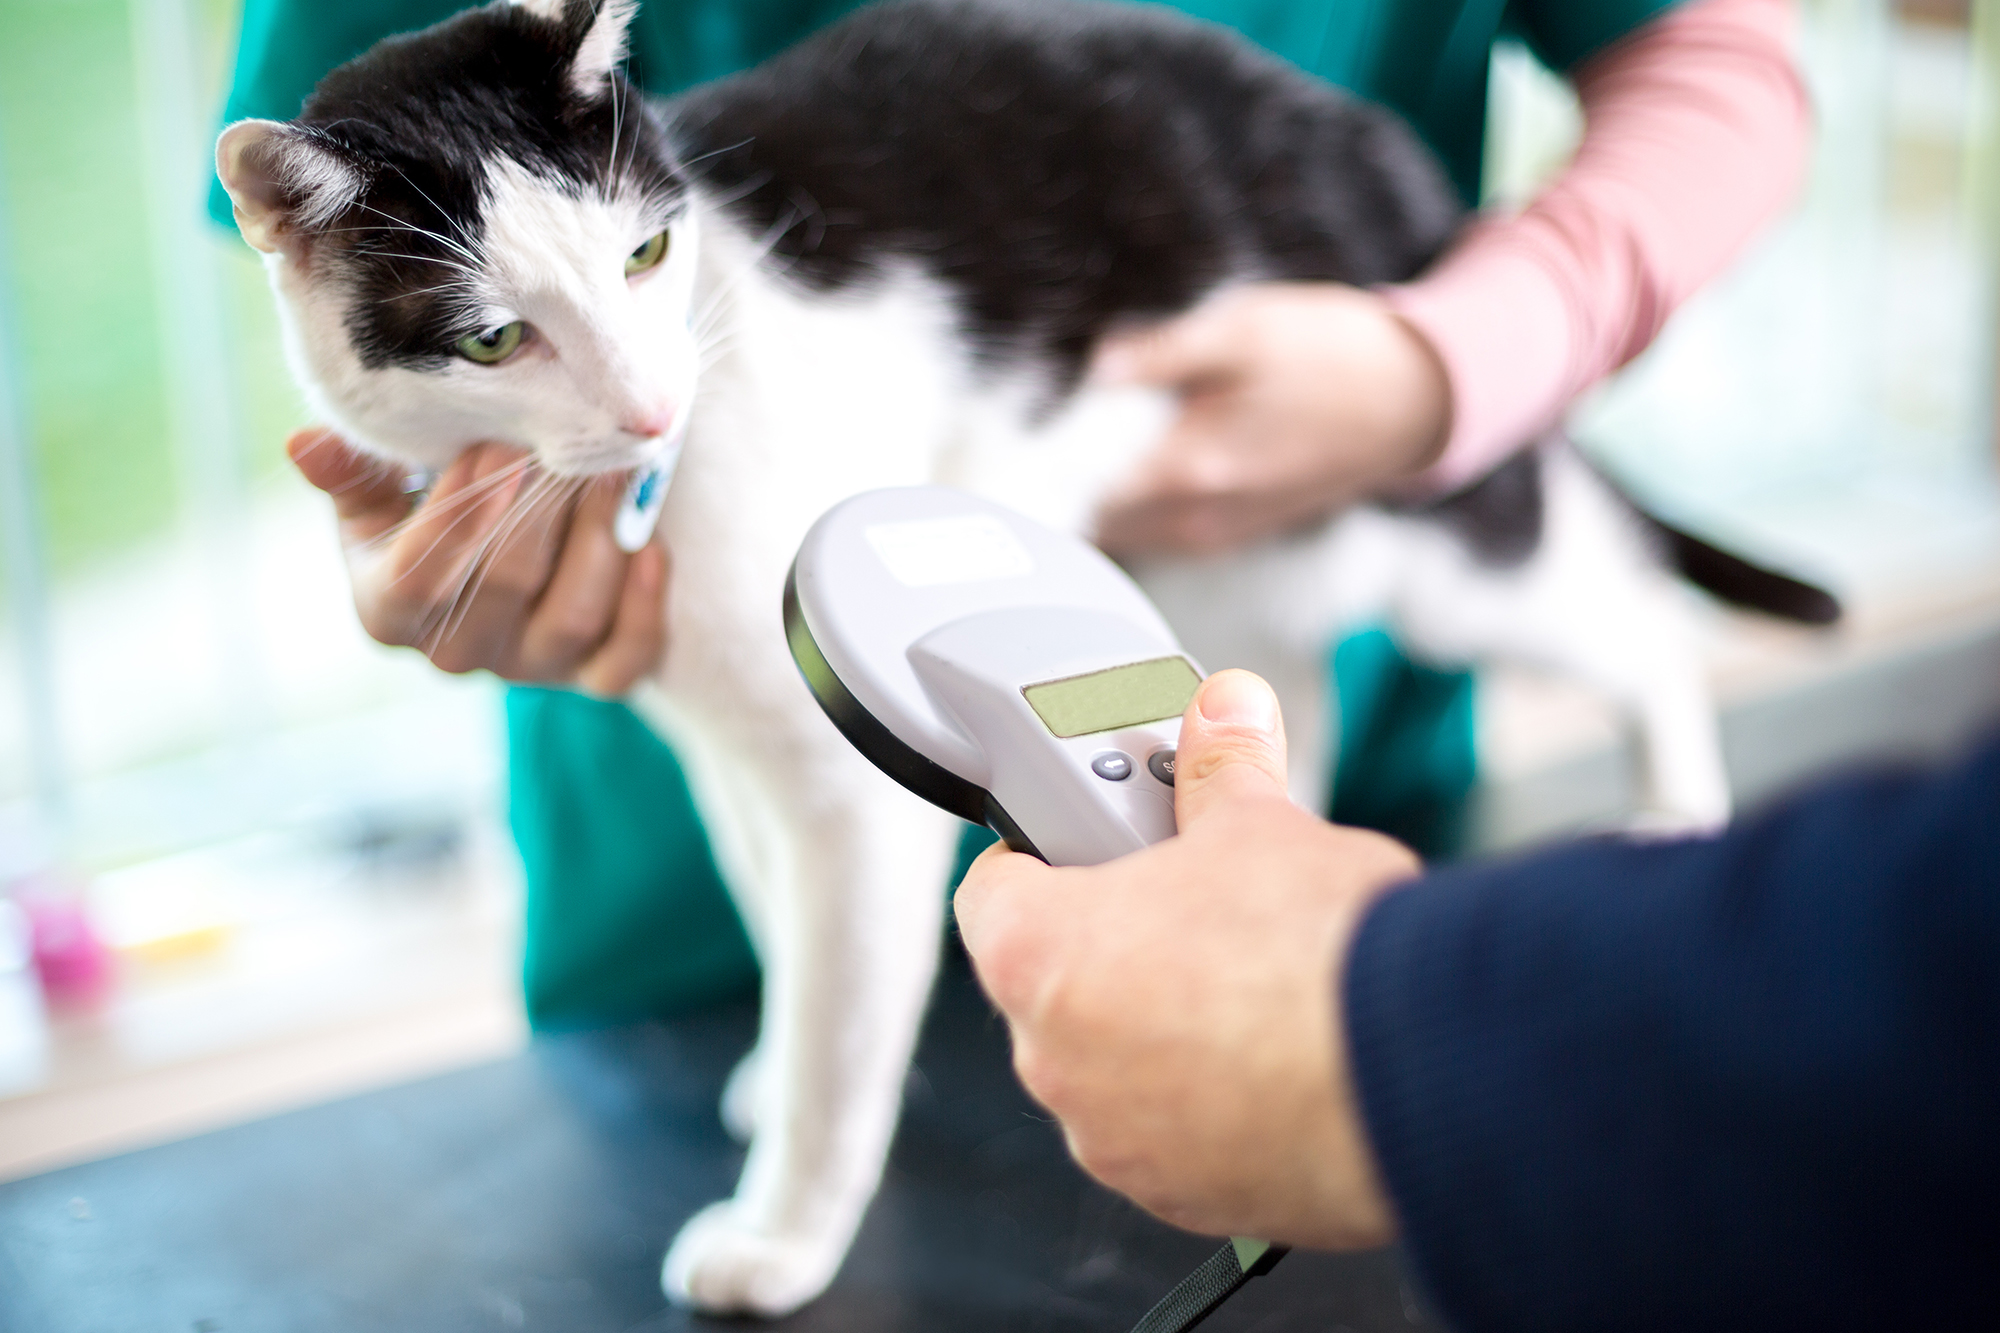 Veterinarian identifies cat ID by scanning microchip implant